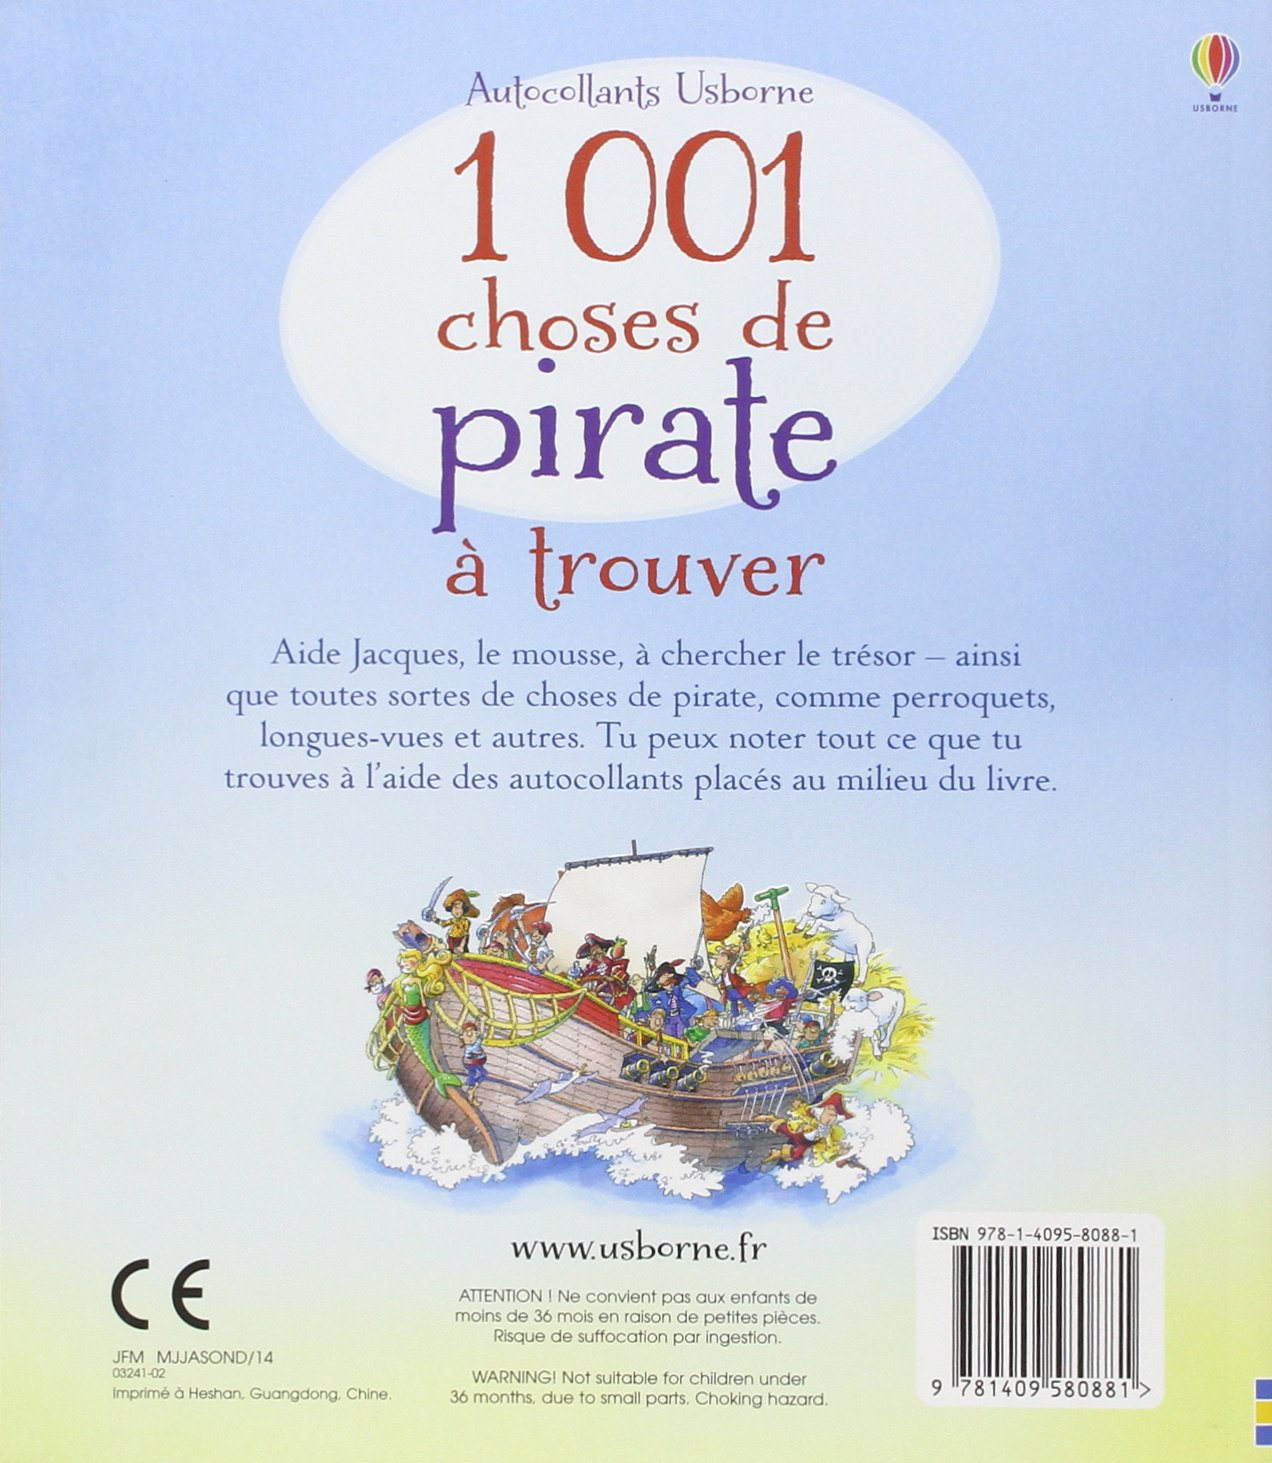 1001 choses de pirate à trouver - Autocollants Usborne: Amazon.fr: Rob  llyod Jones, Teri Gower, Michelle Lawrence, Stephanie Serazin: Livres